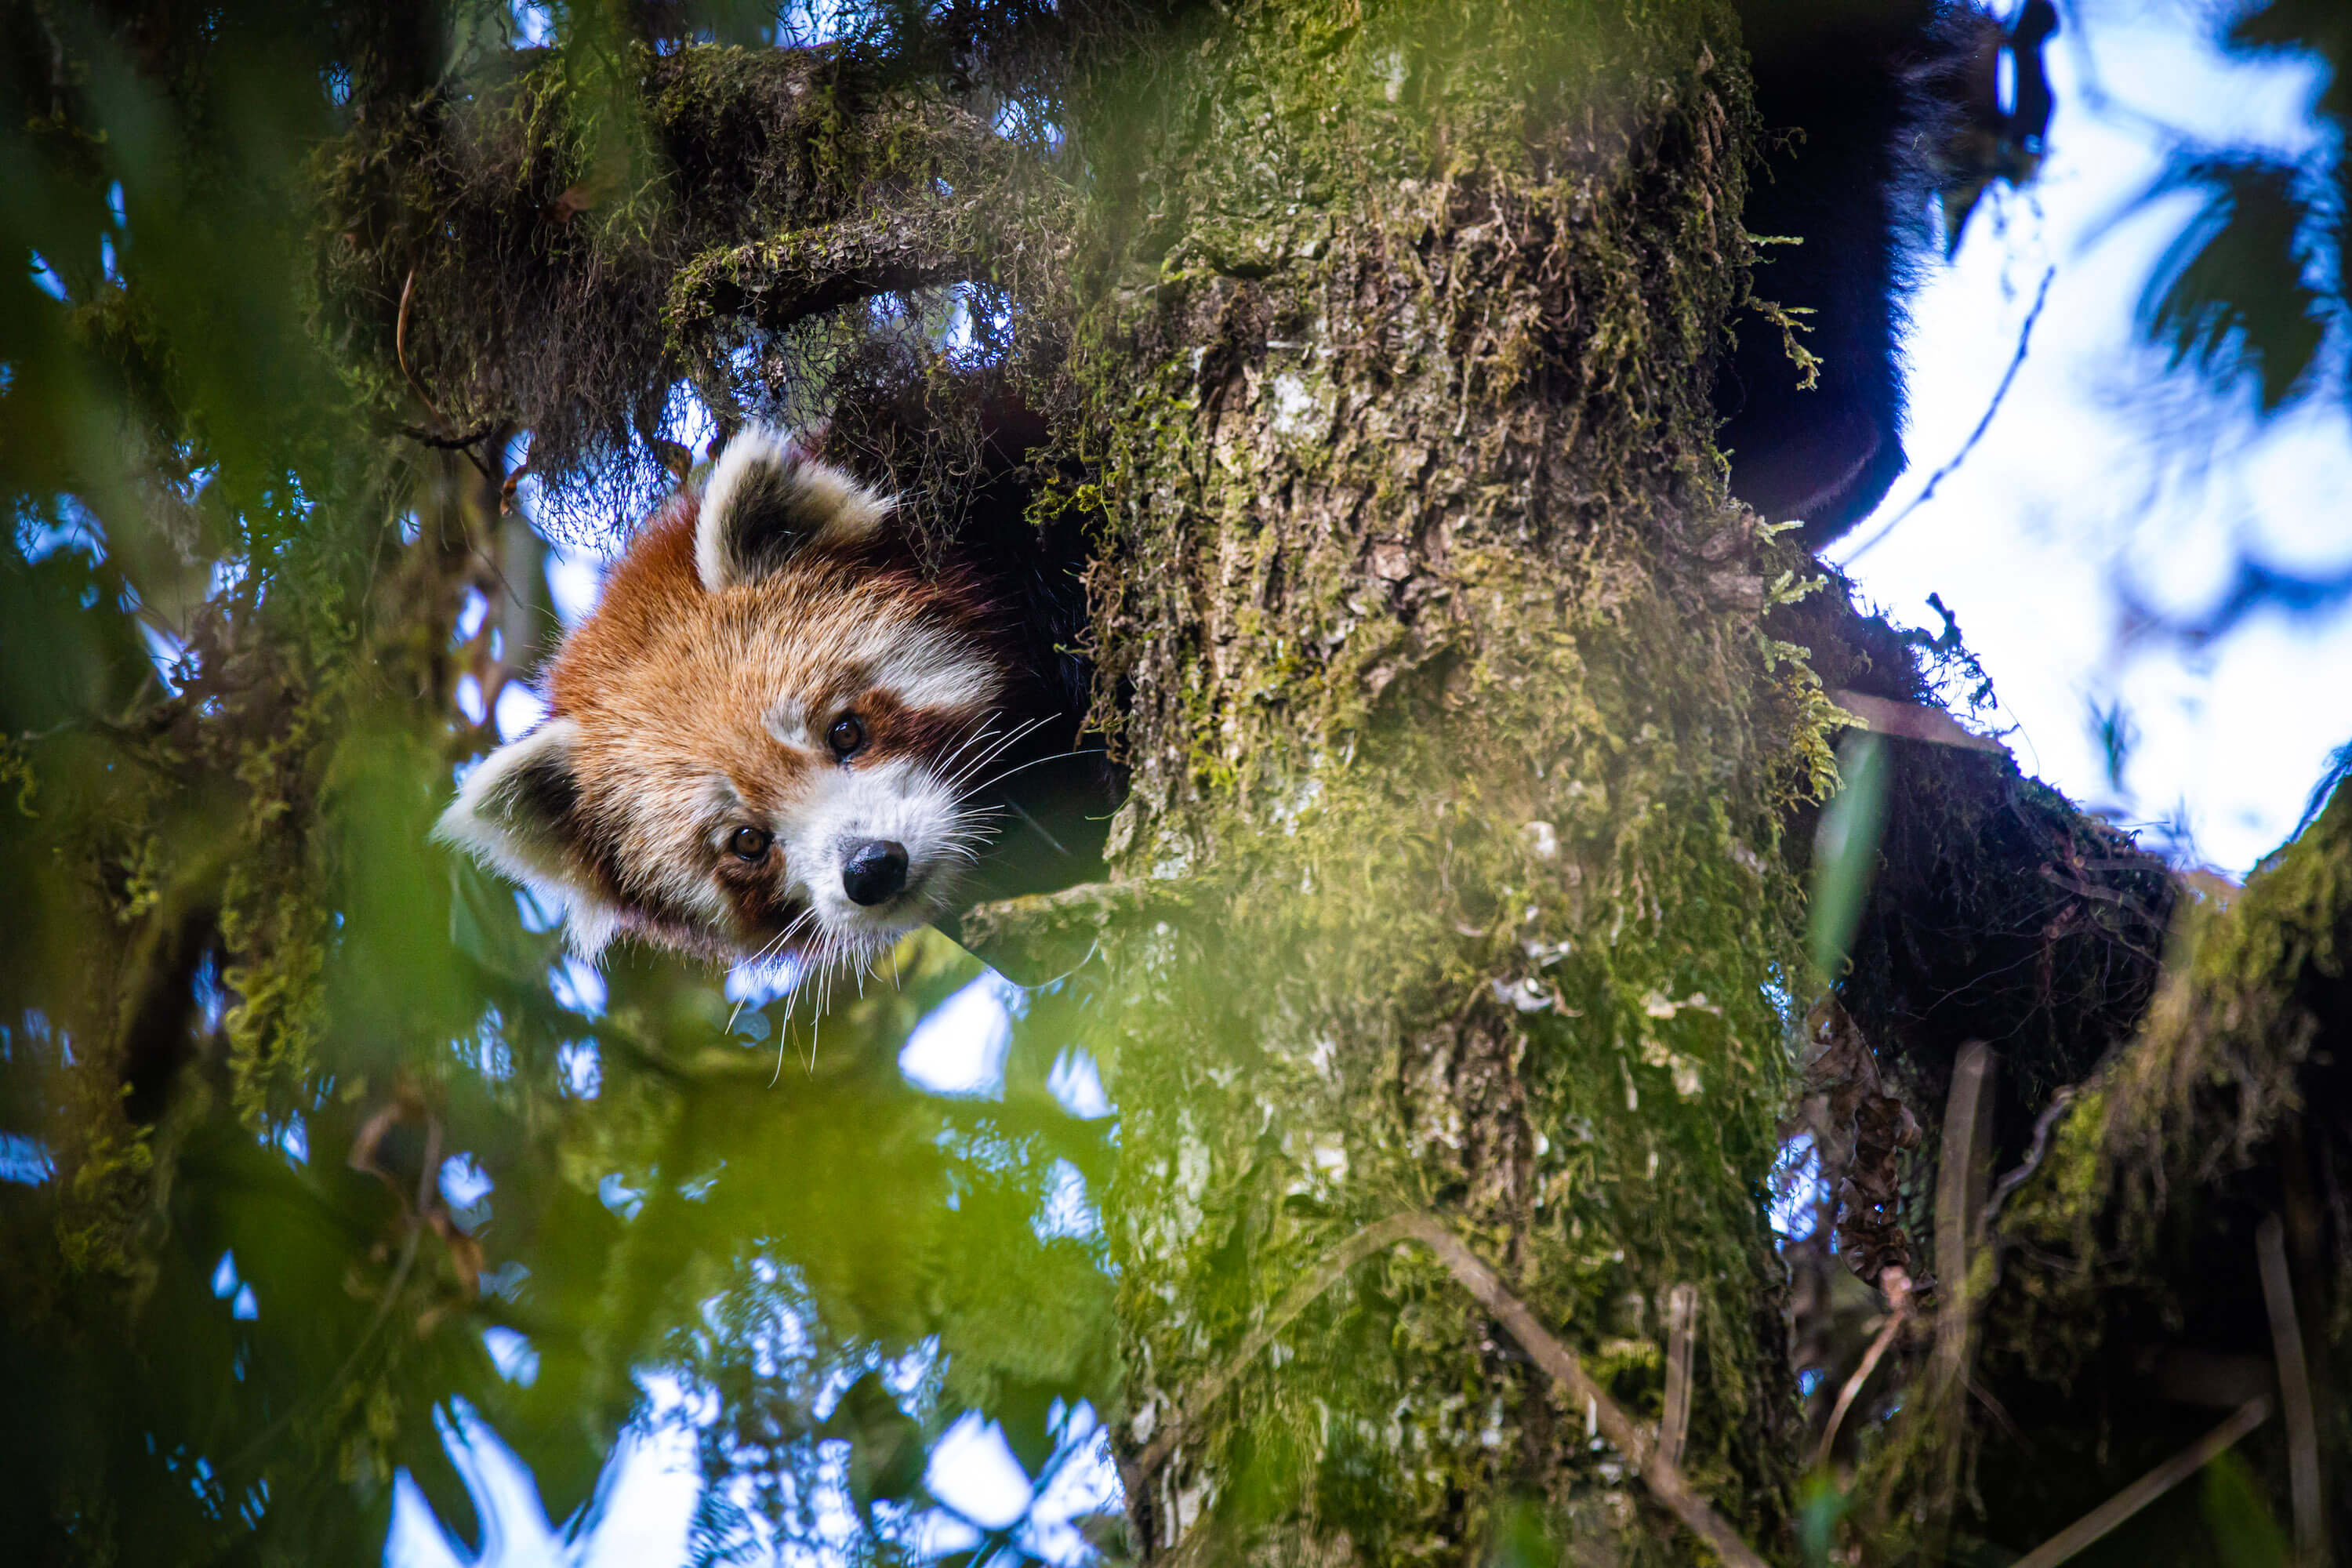 Tracking Nepal's red panda by satellite